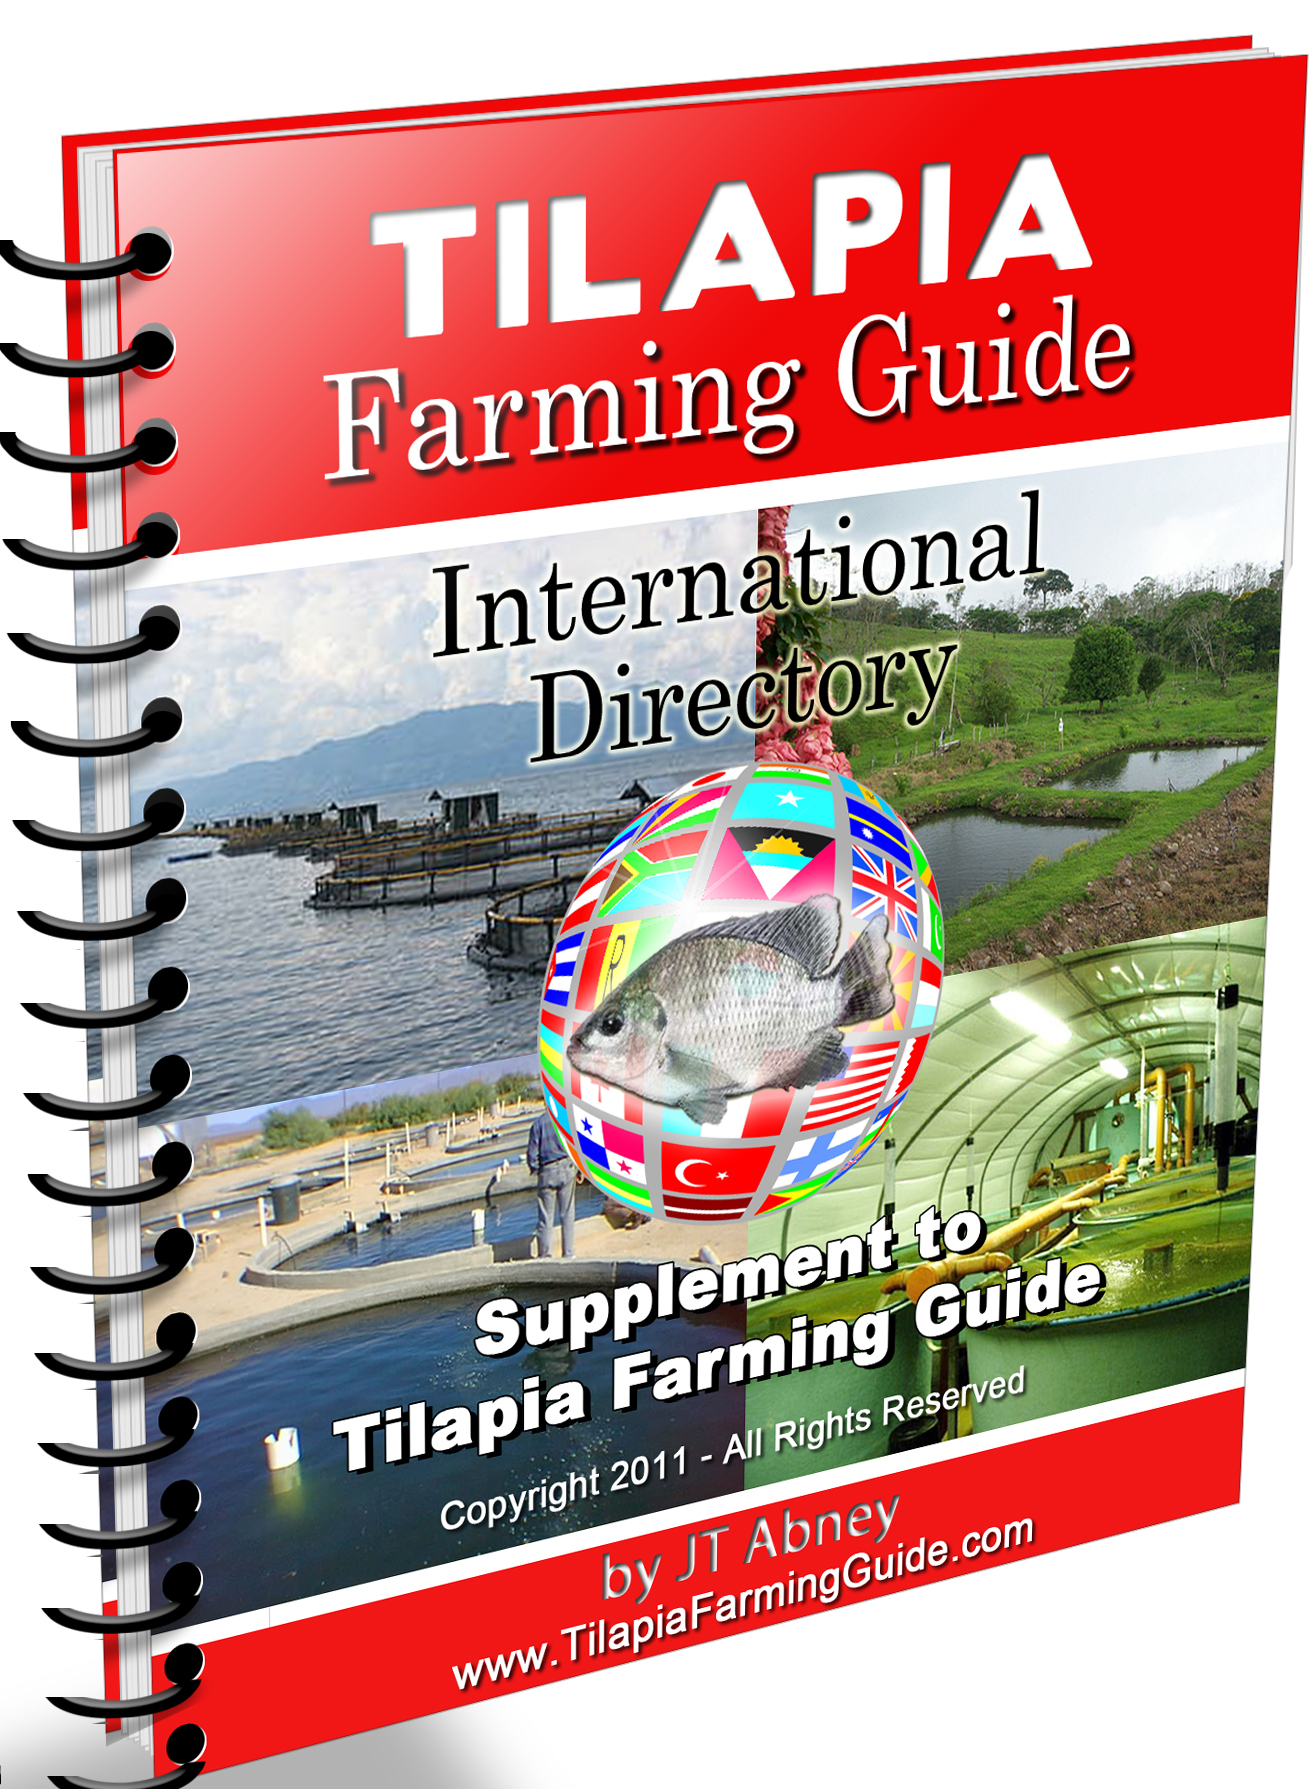 Tilapia farming guide weve added entire new sections to the guide tilapia importers tilapia exporters tilapia agents this thing is worth the price of the entire tilapia fandeluxe Images